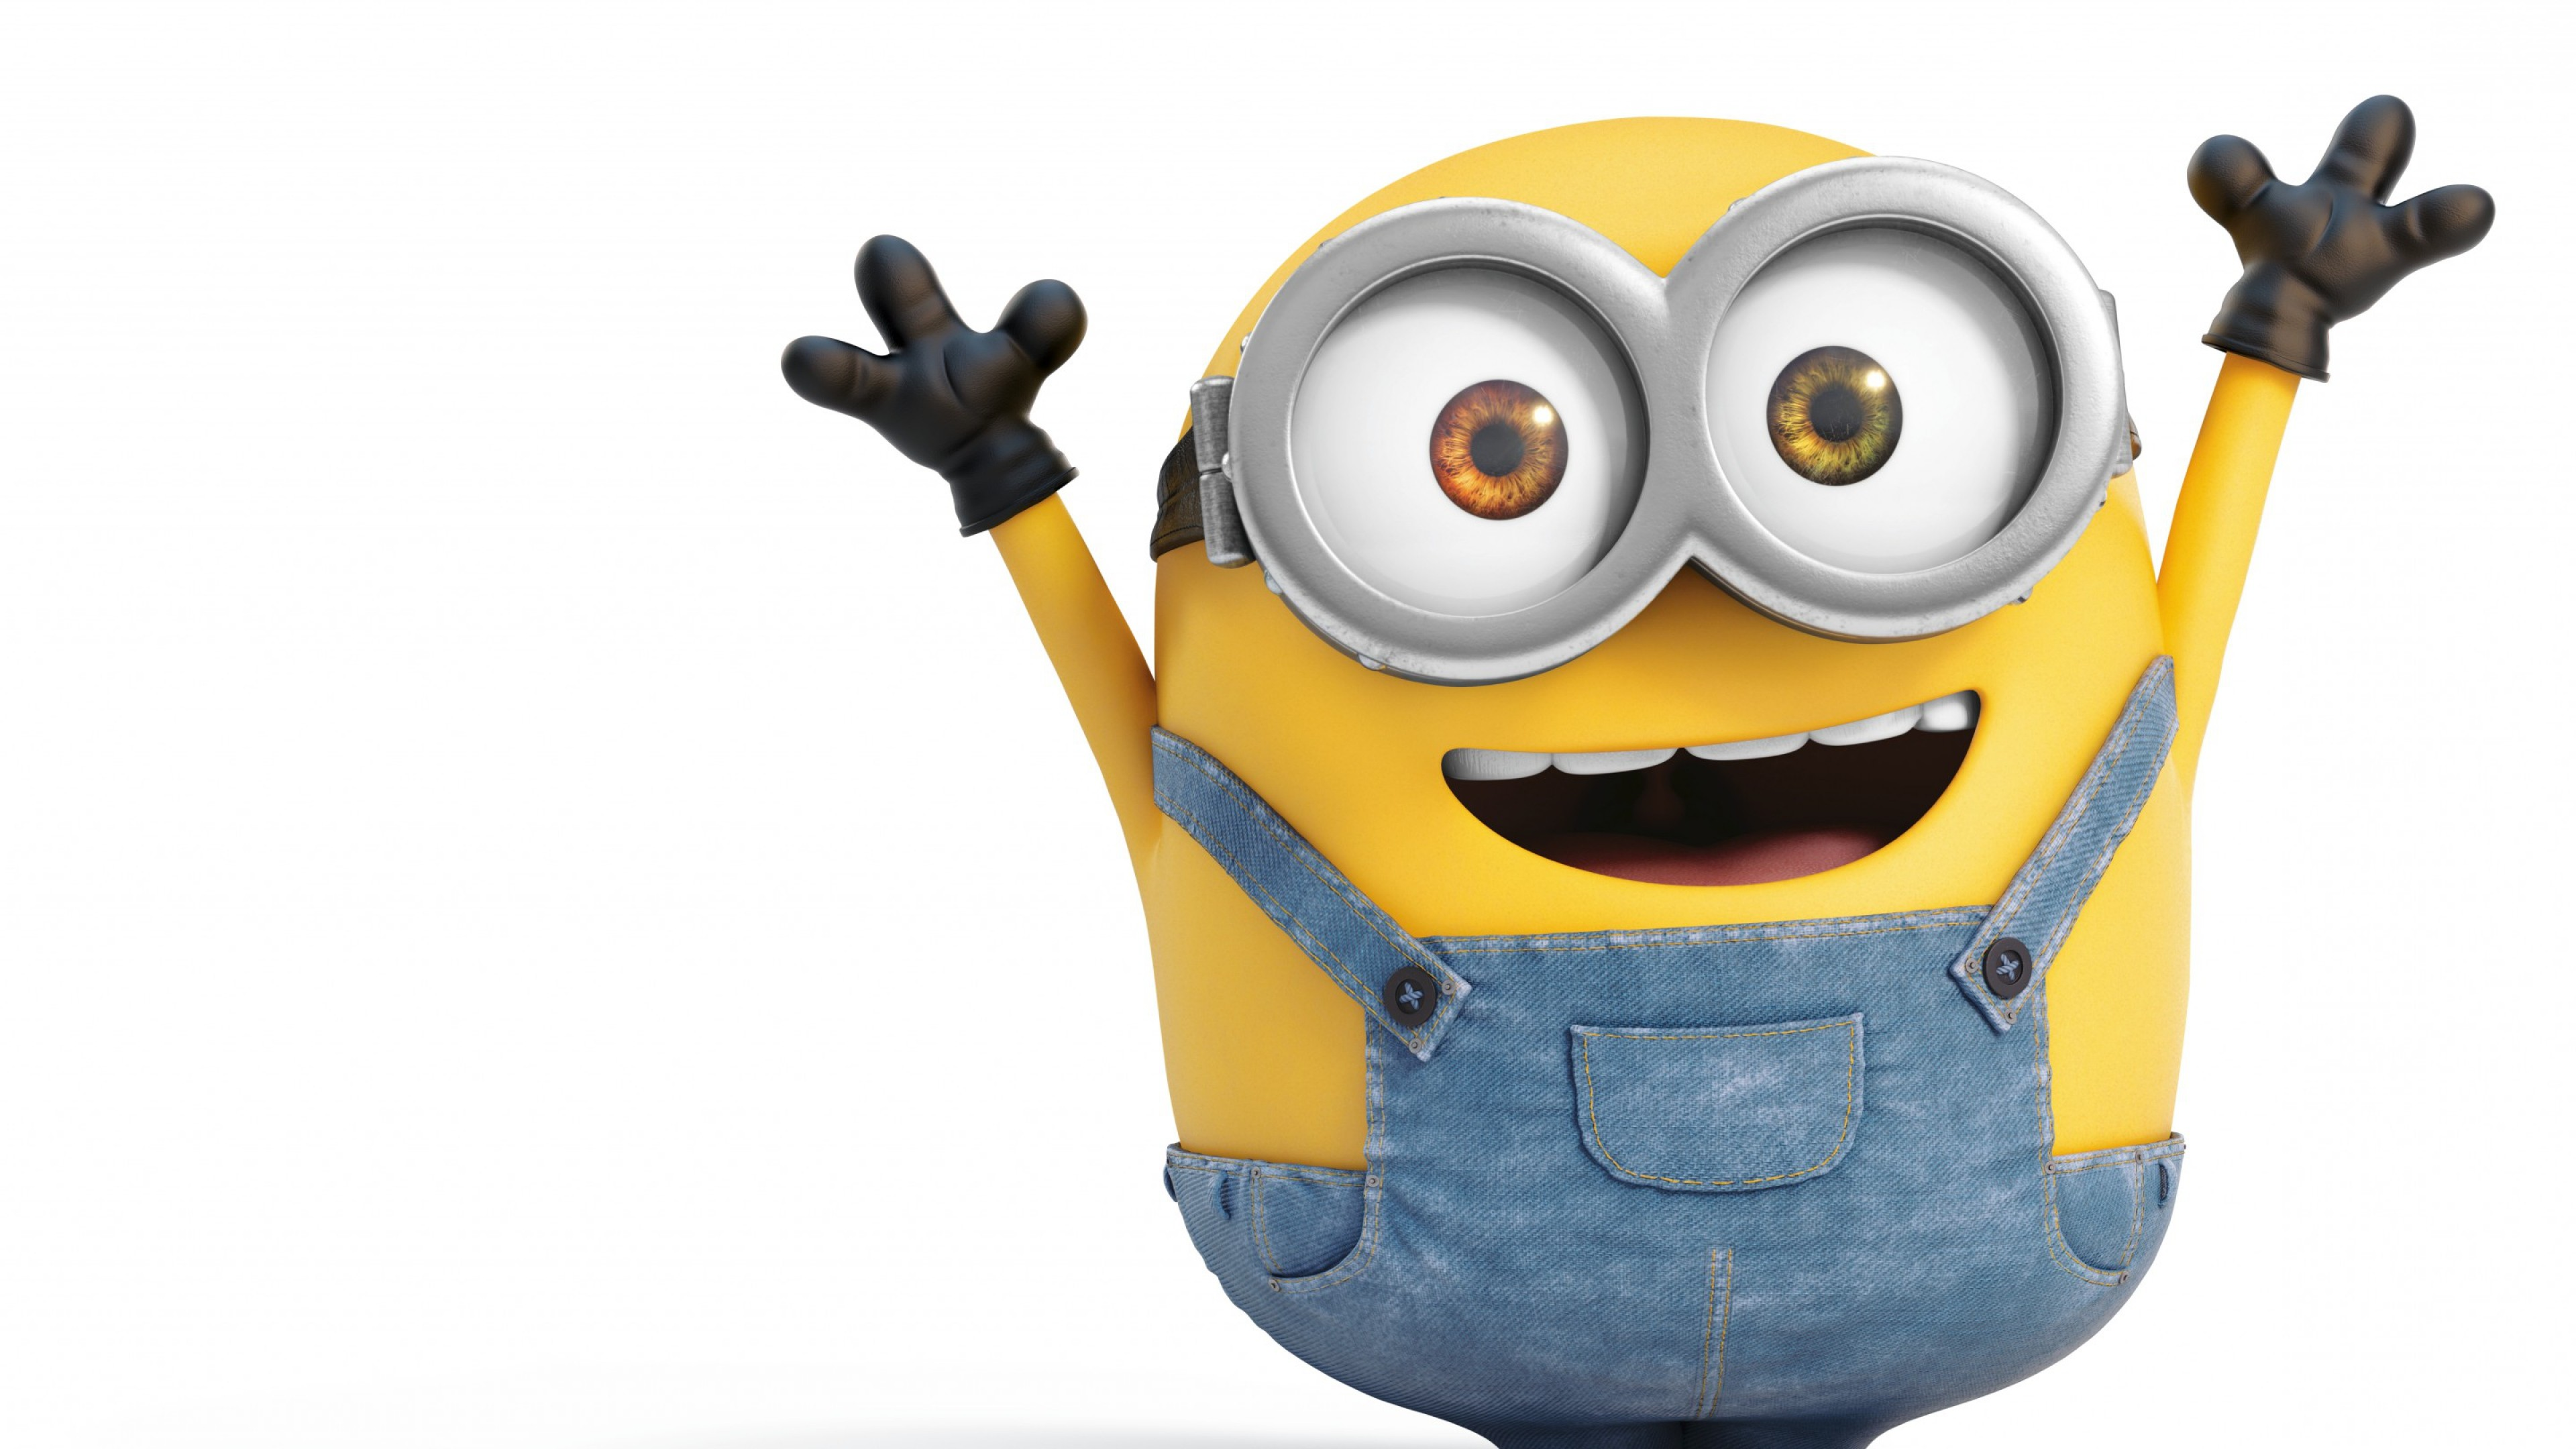 Bob Minions HD Cartoons k Wallpapers Images Backgrounds Photos